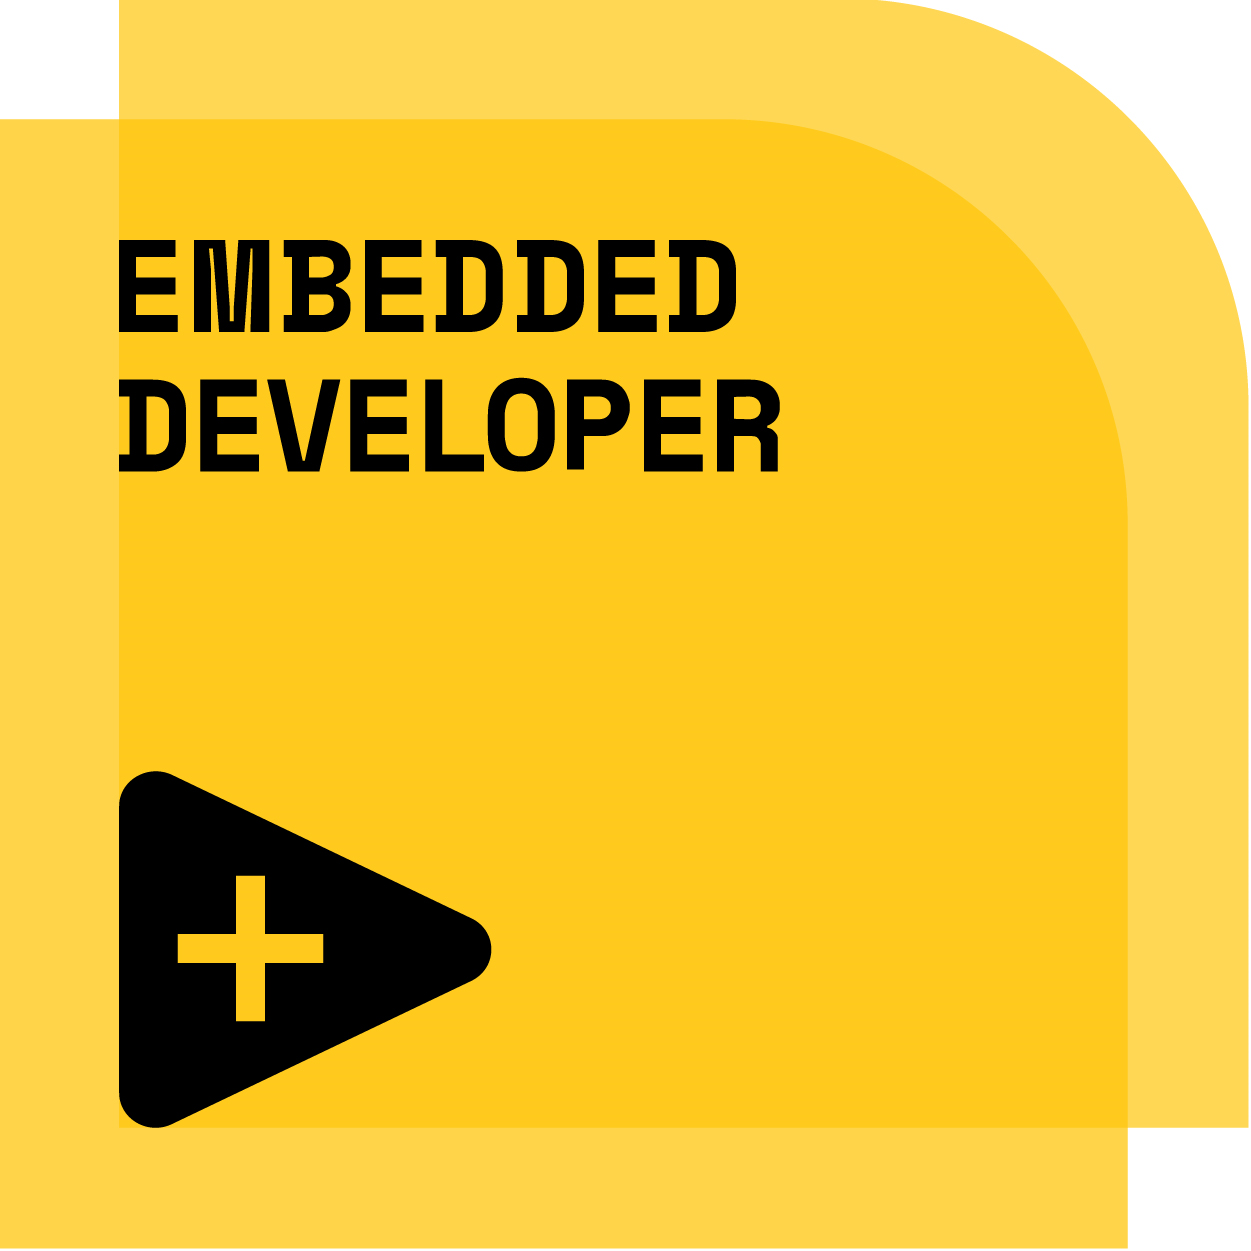 Certified LabVIEW Embedded Systems Developer